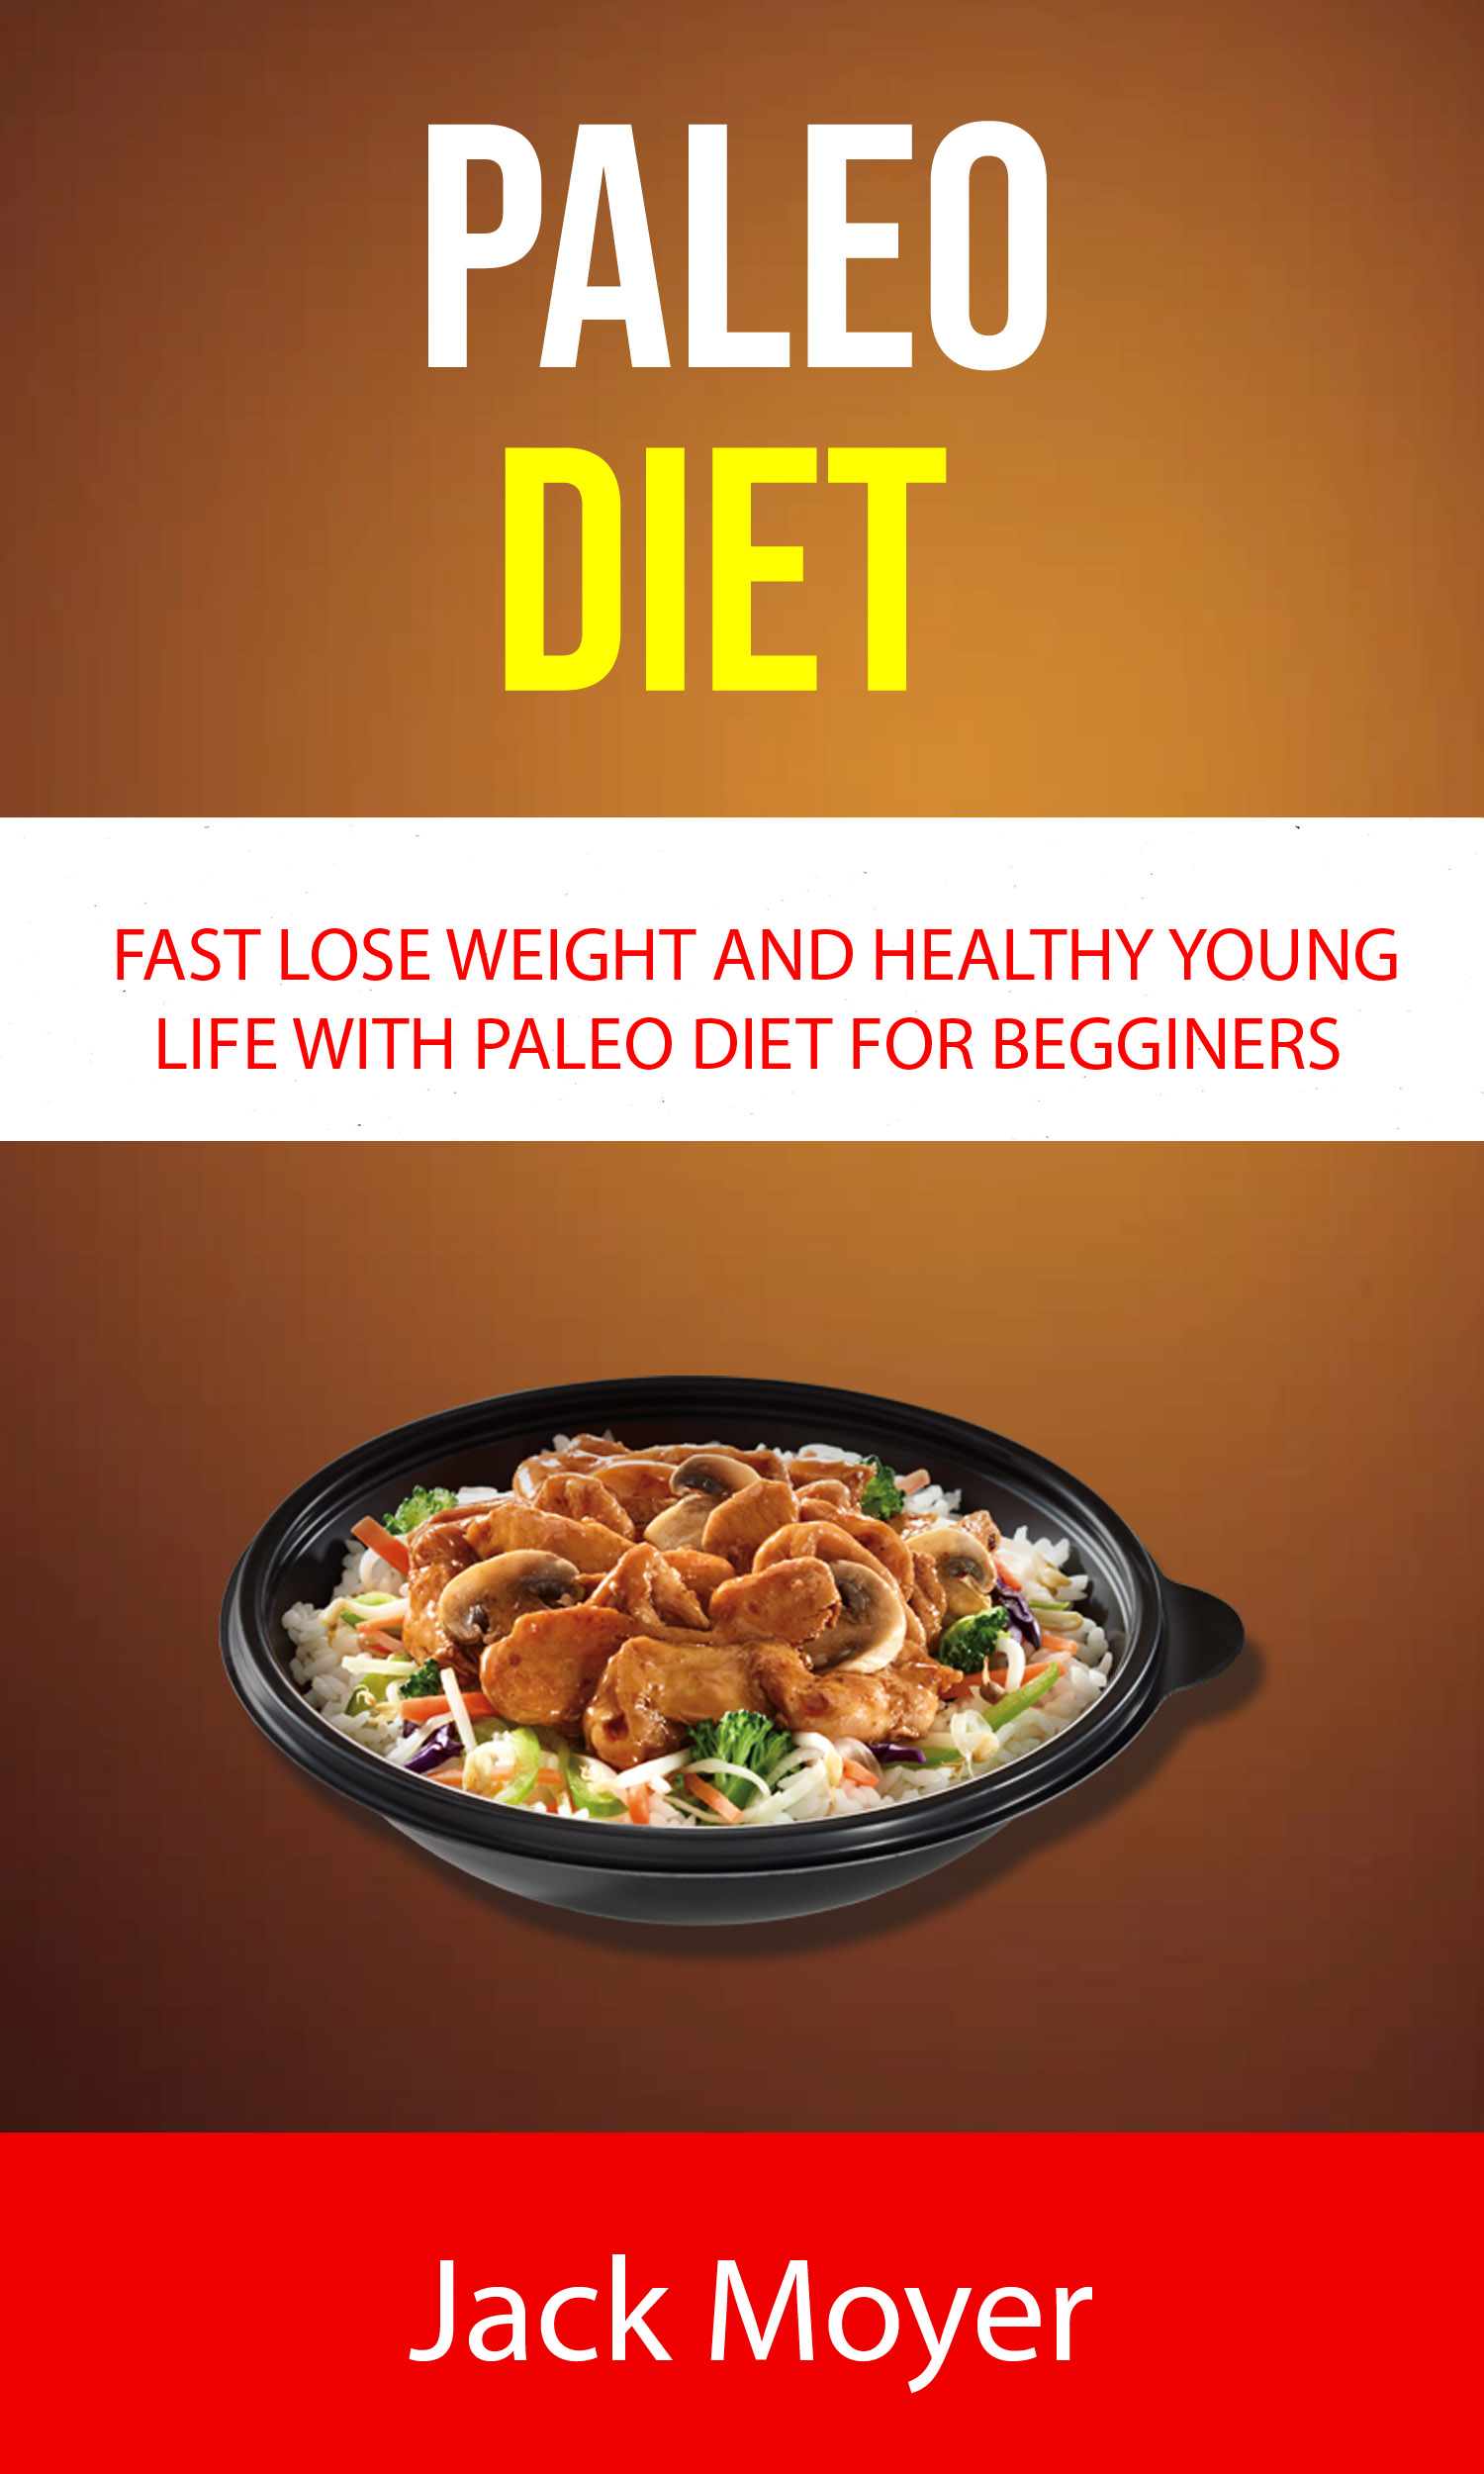 Paleo diet: fast lose weight and healthy young life with paleo diet for begginers